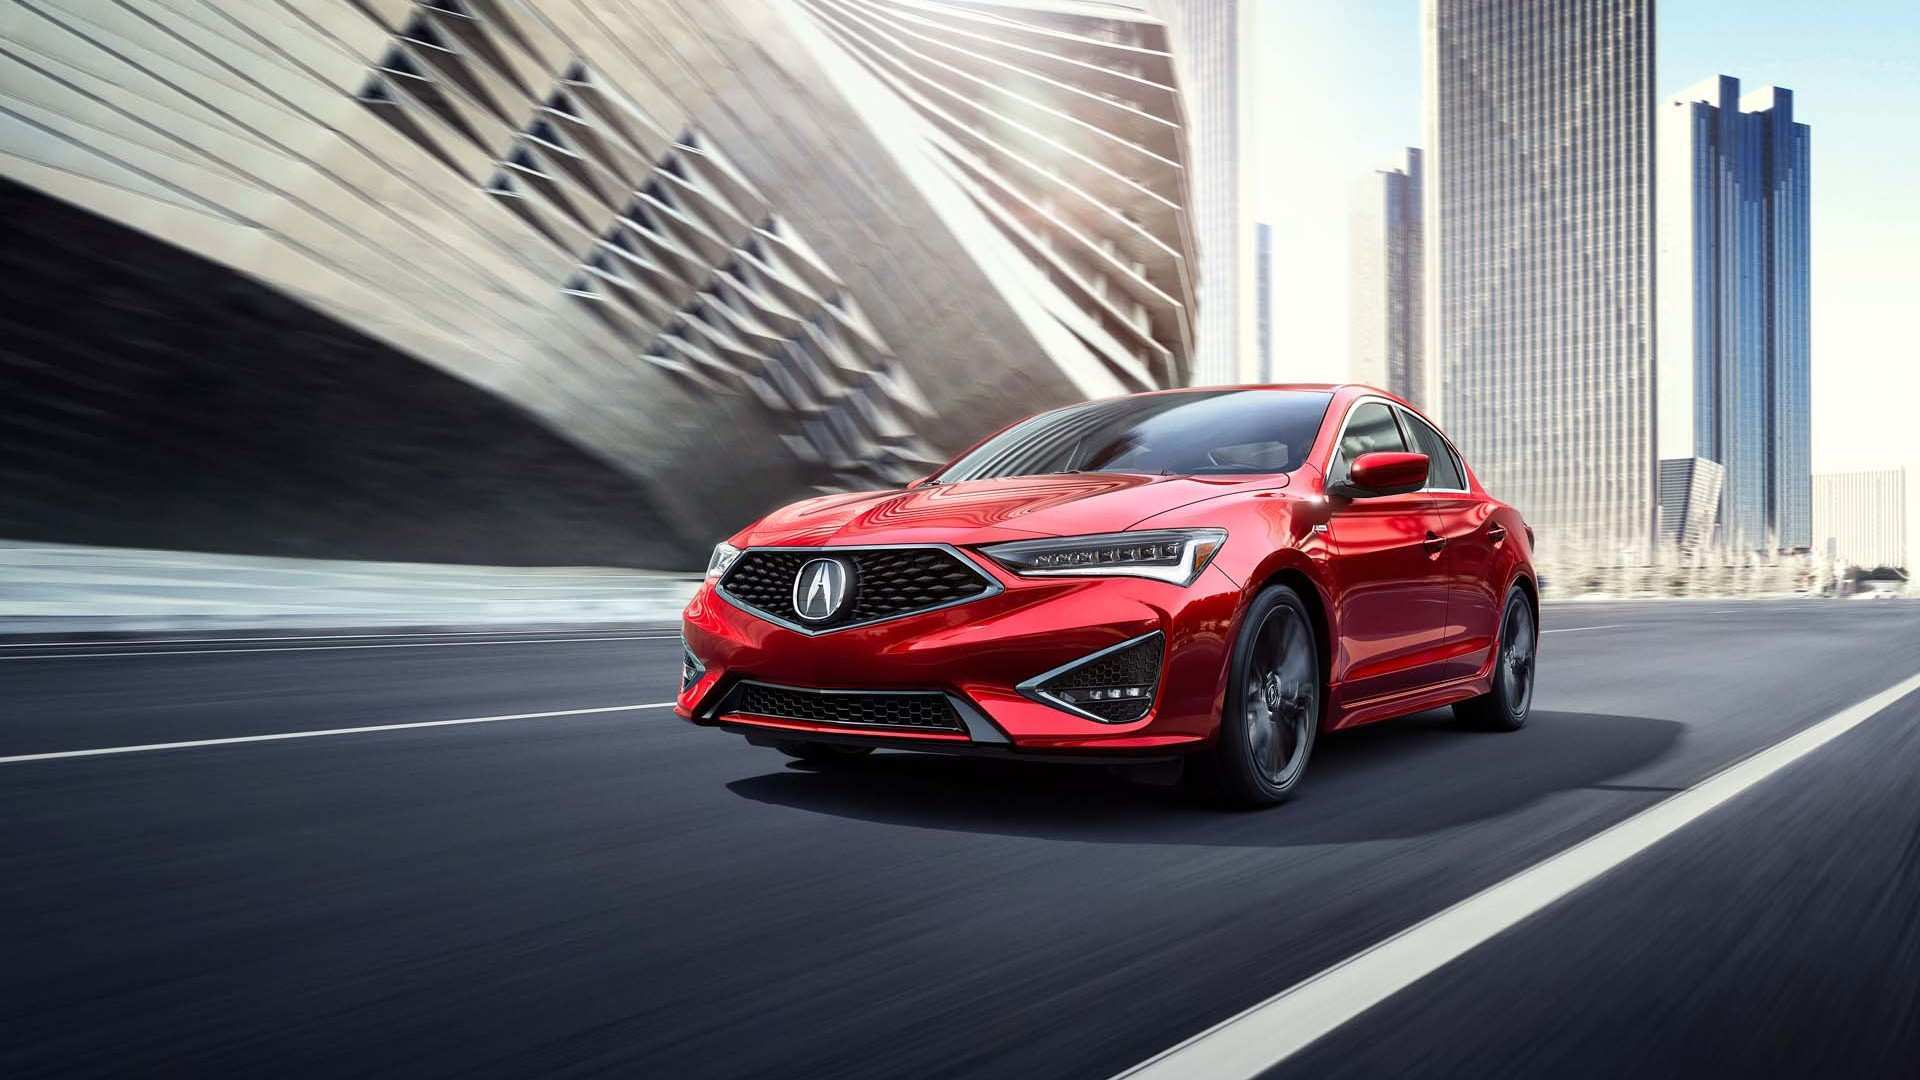 47 All New 2020 Acura Ilx Redesign Price And Release Date